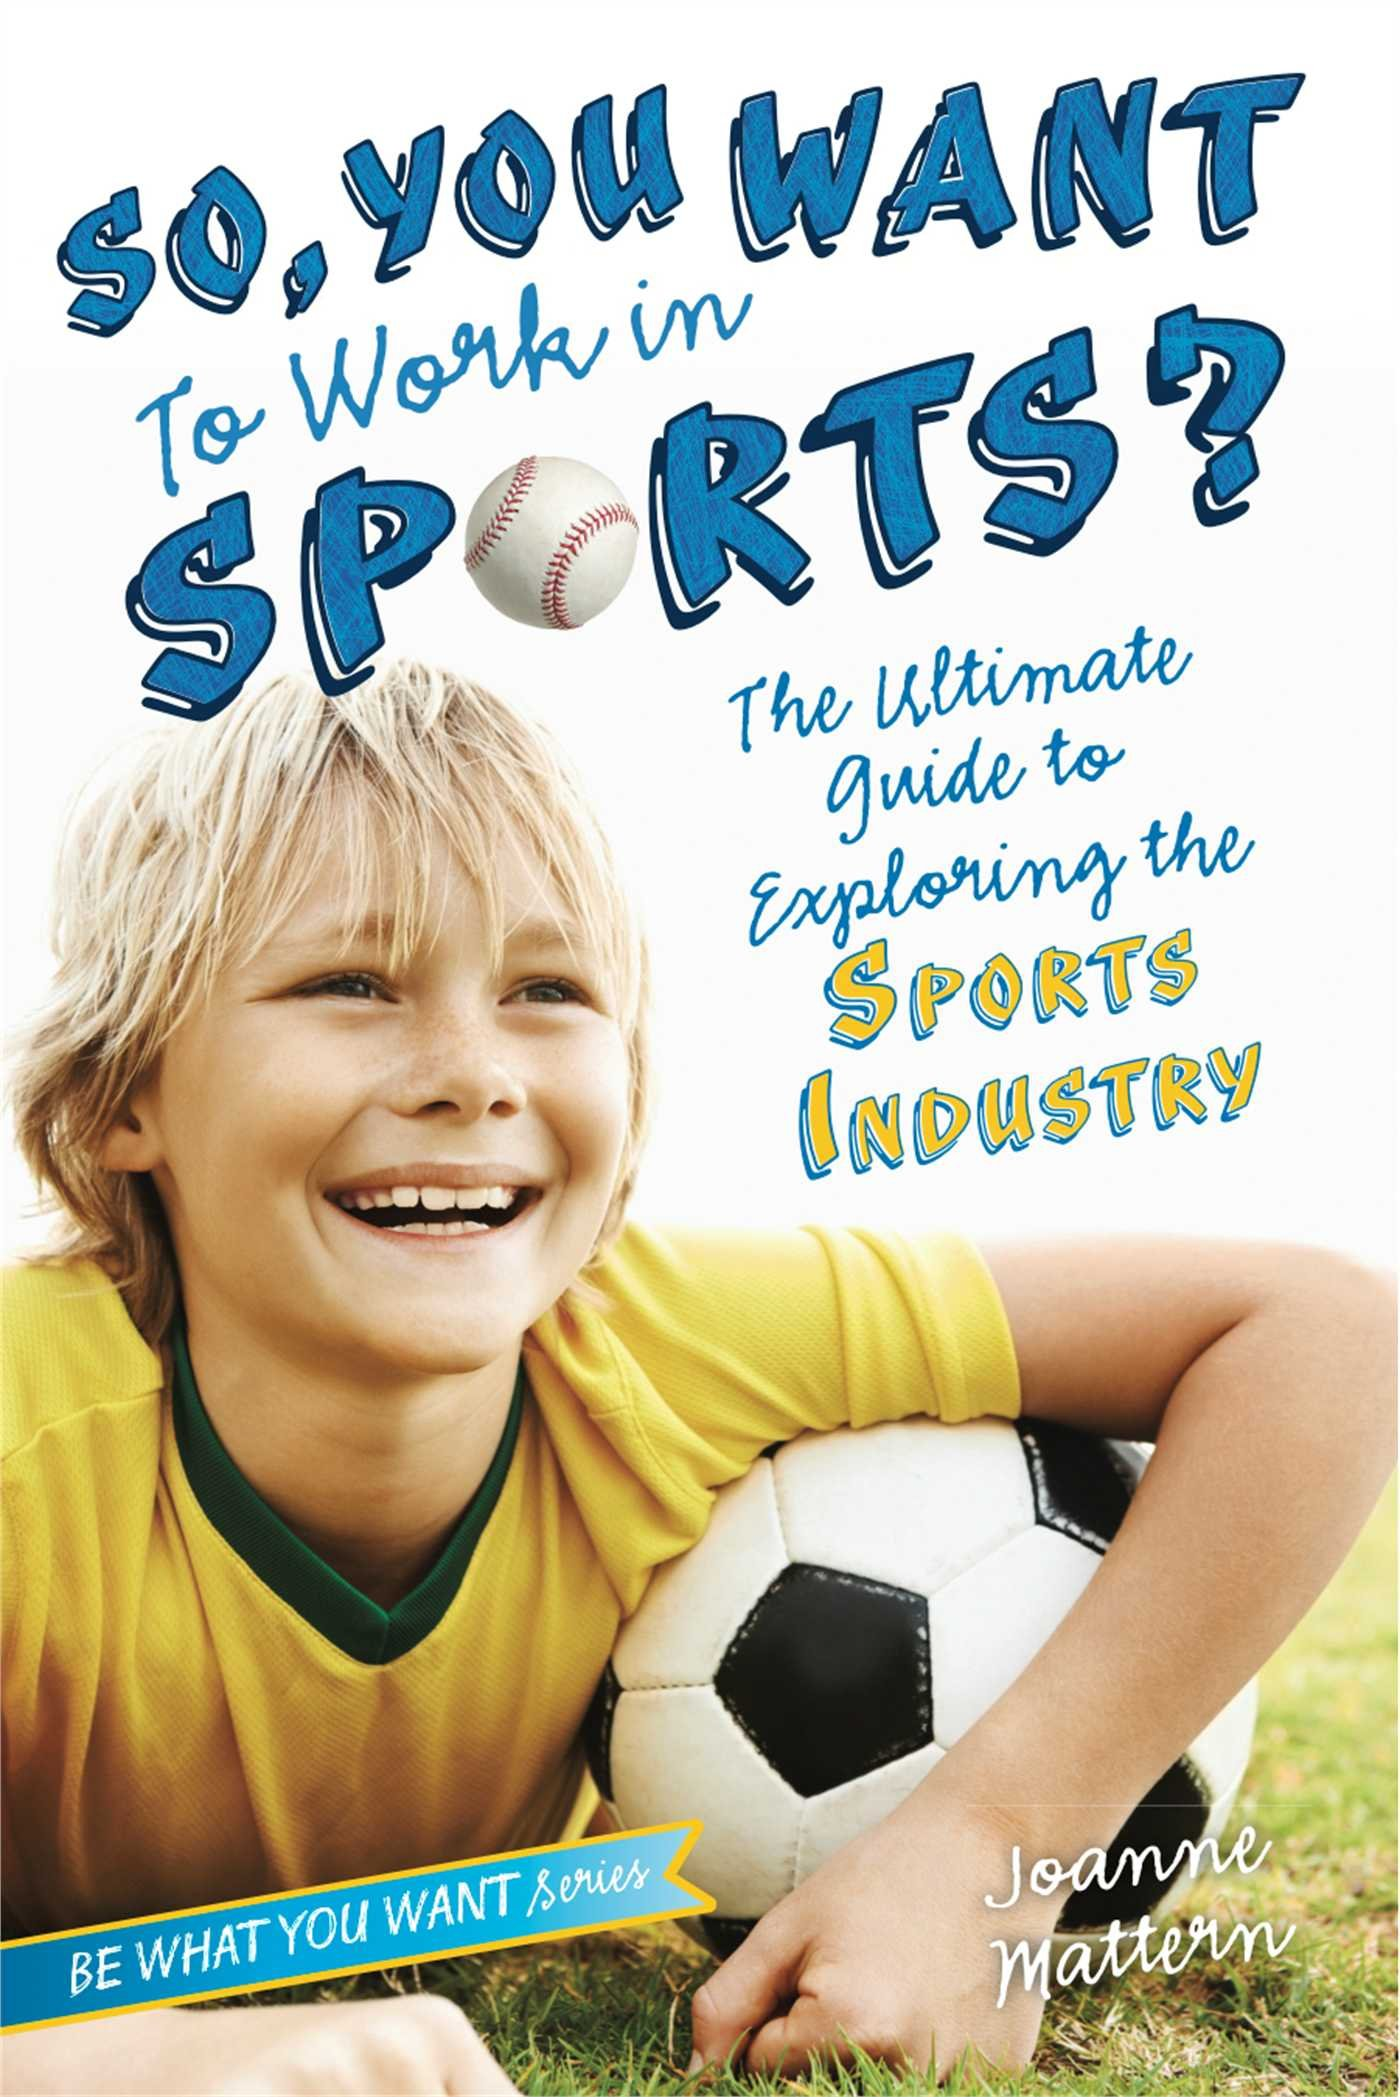 So you want to work in sports the ultimate guide to exploring the the ultimate guide to exploring the sports industry be what you want joanne mattern 9781582704487 amazon books fandeluxe Image collections